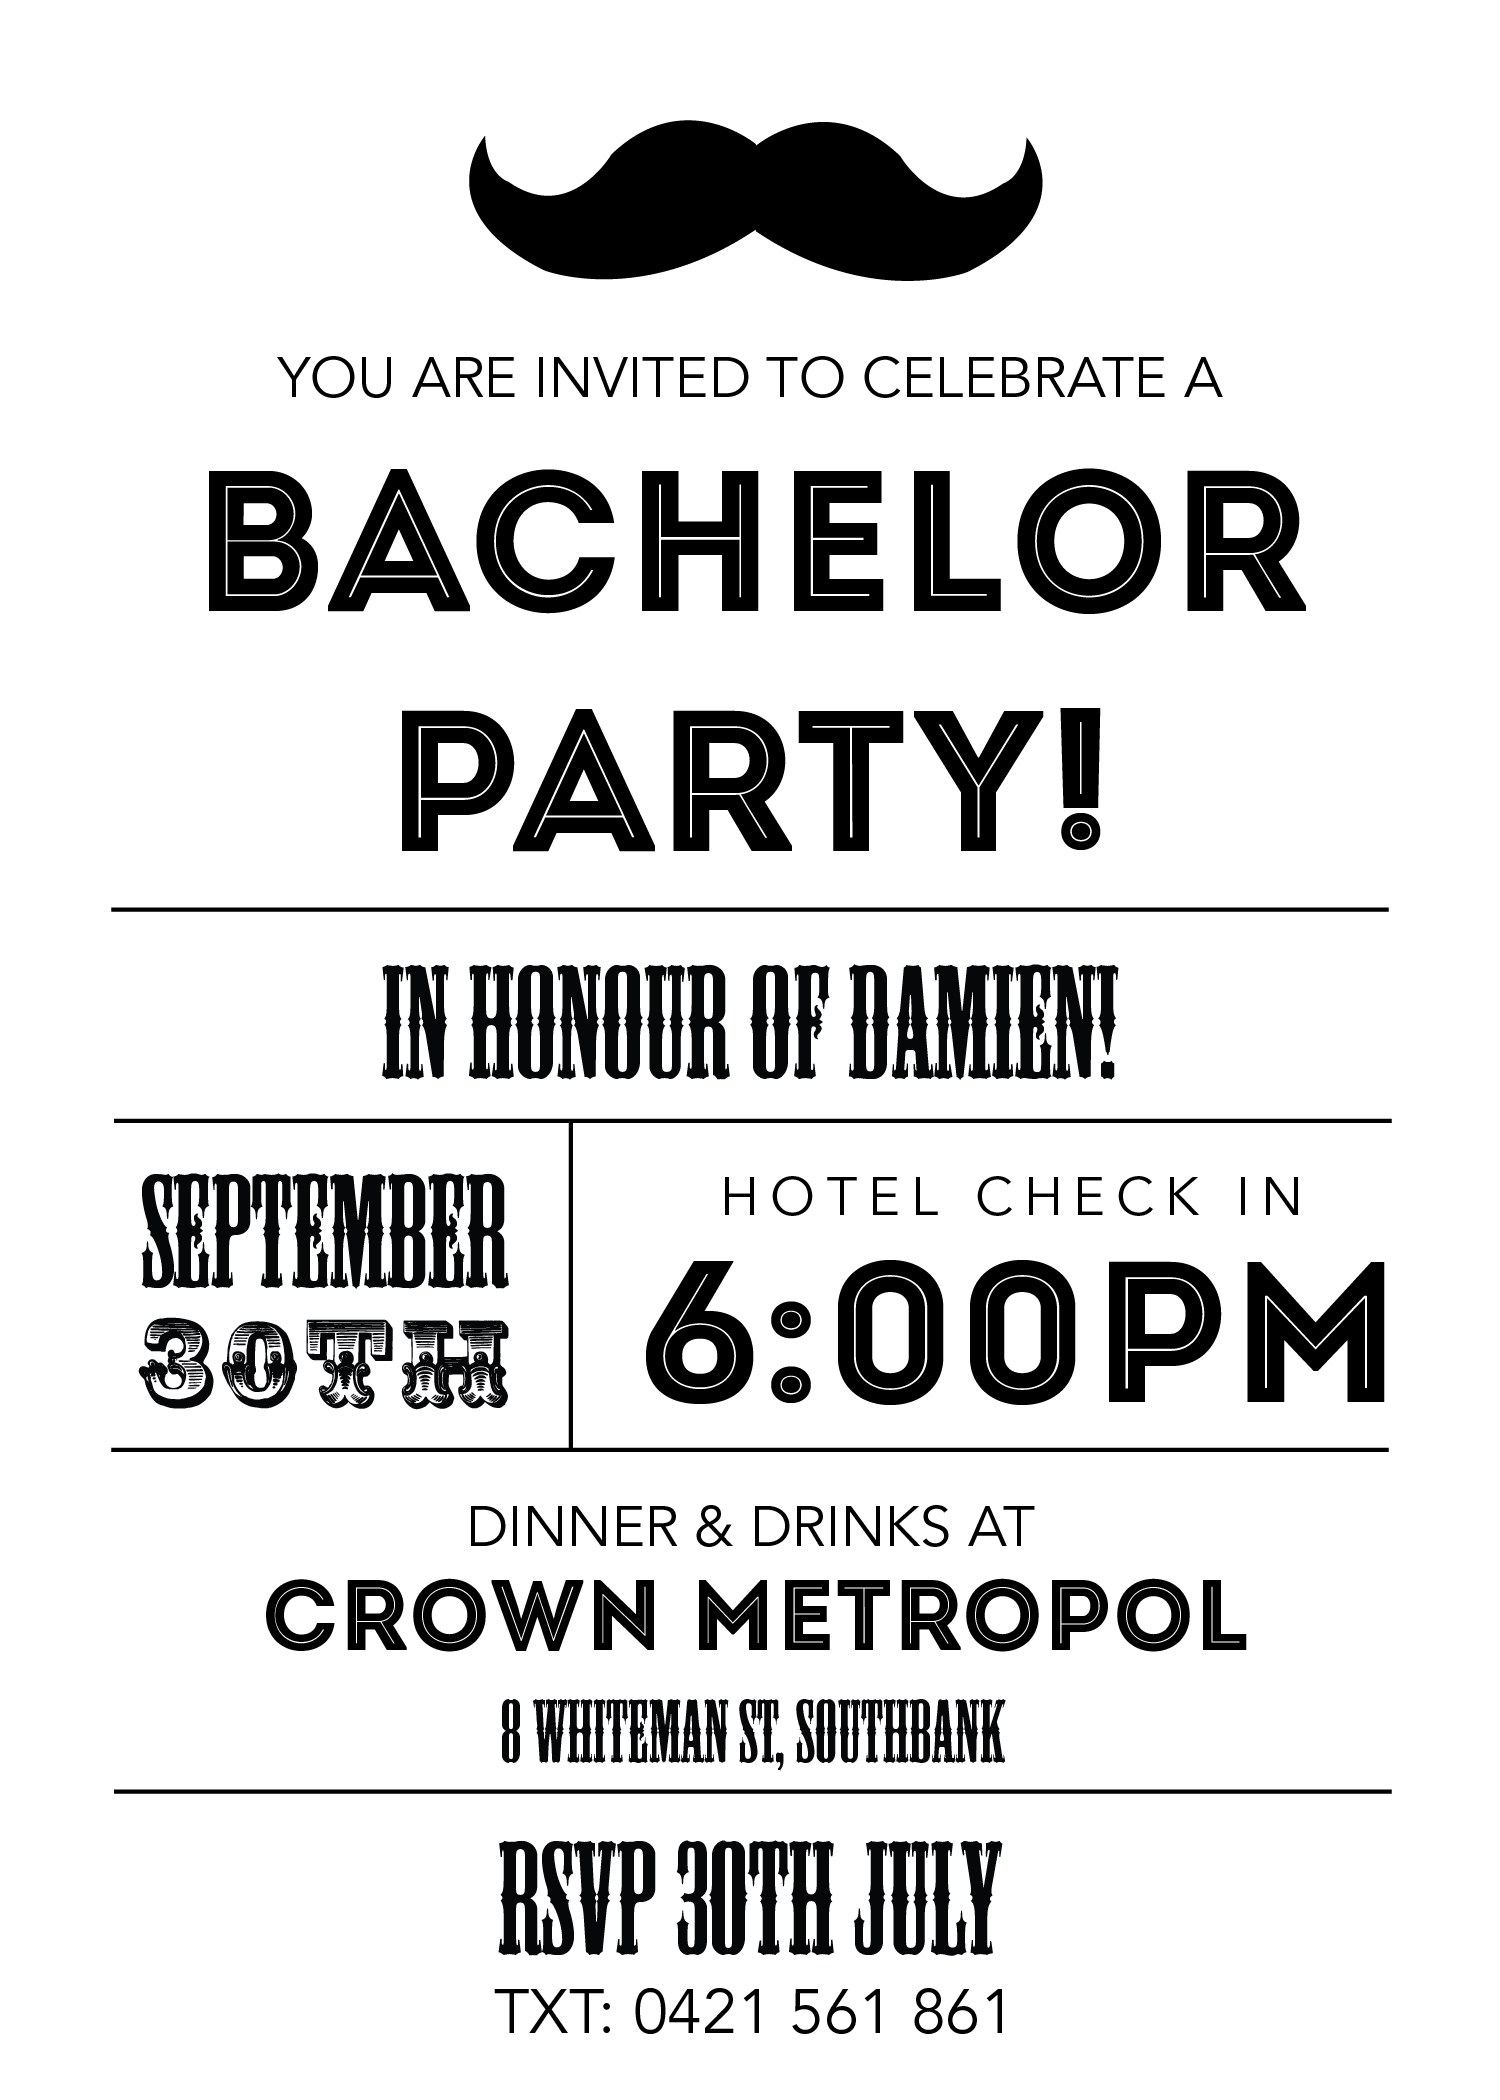 bachelor party invites sndclshcom invitation wording party invitations mustache invitations